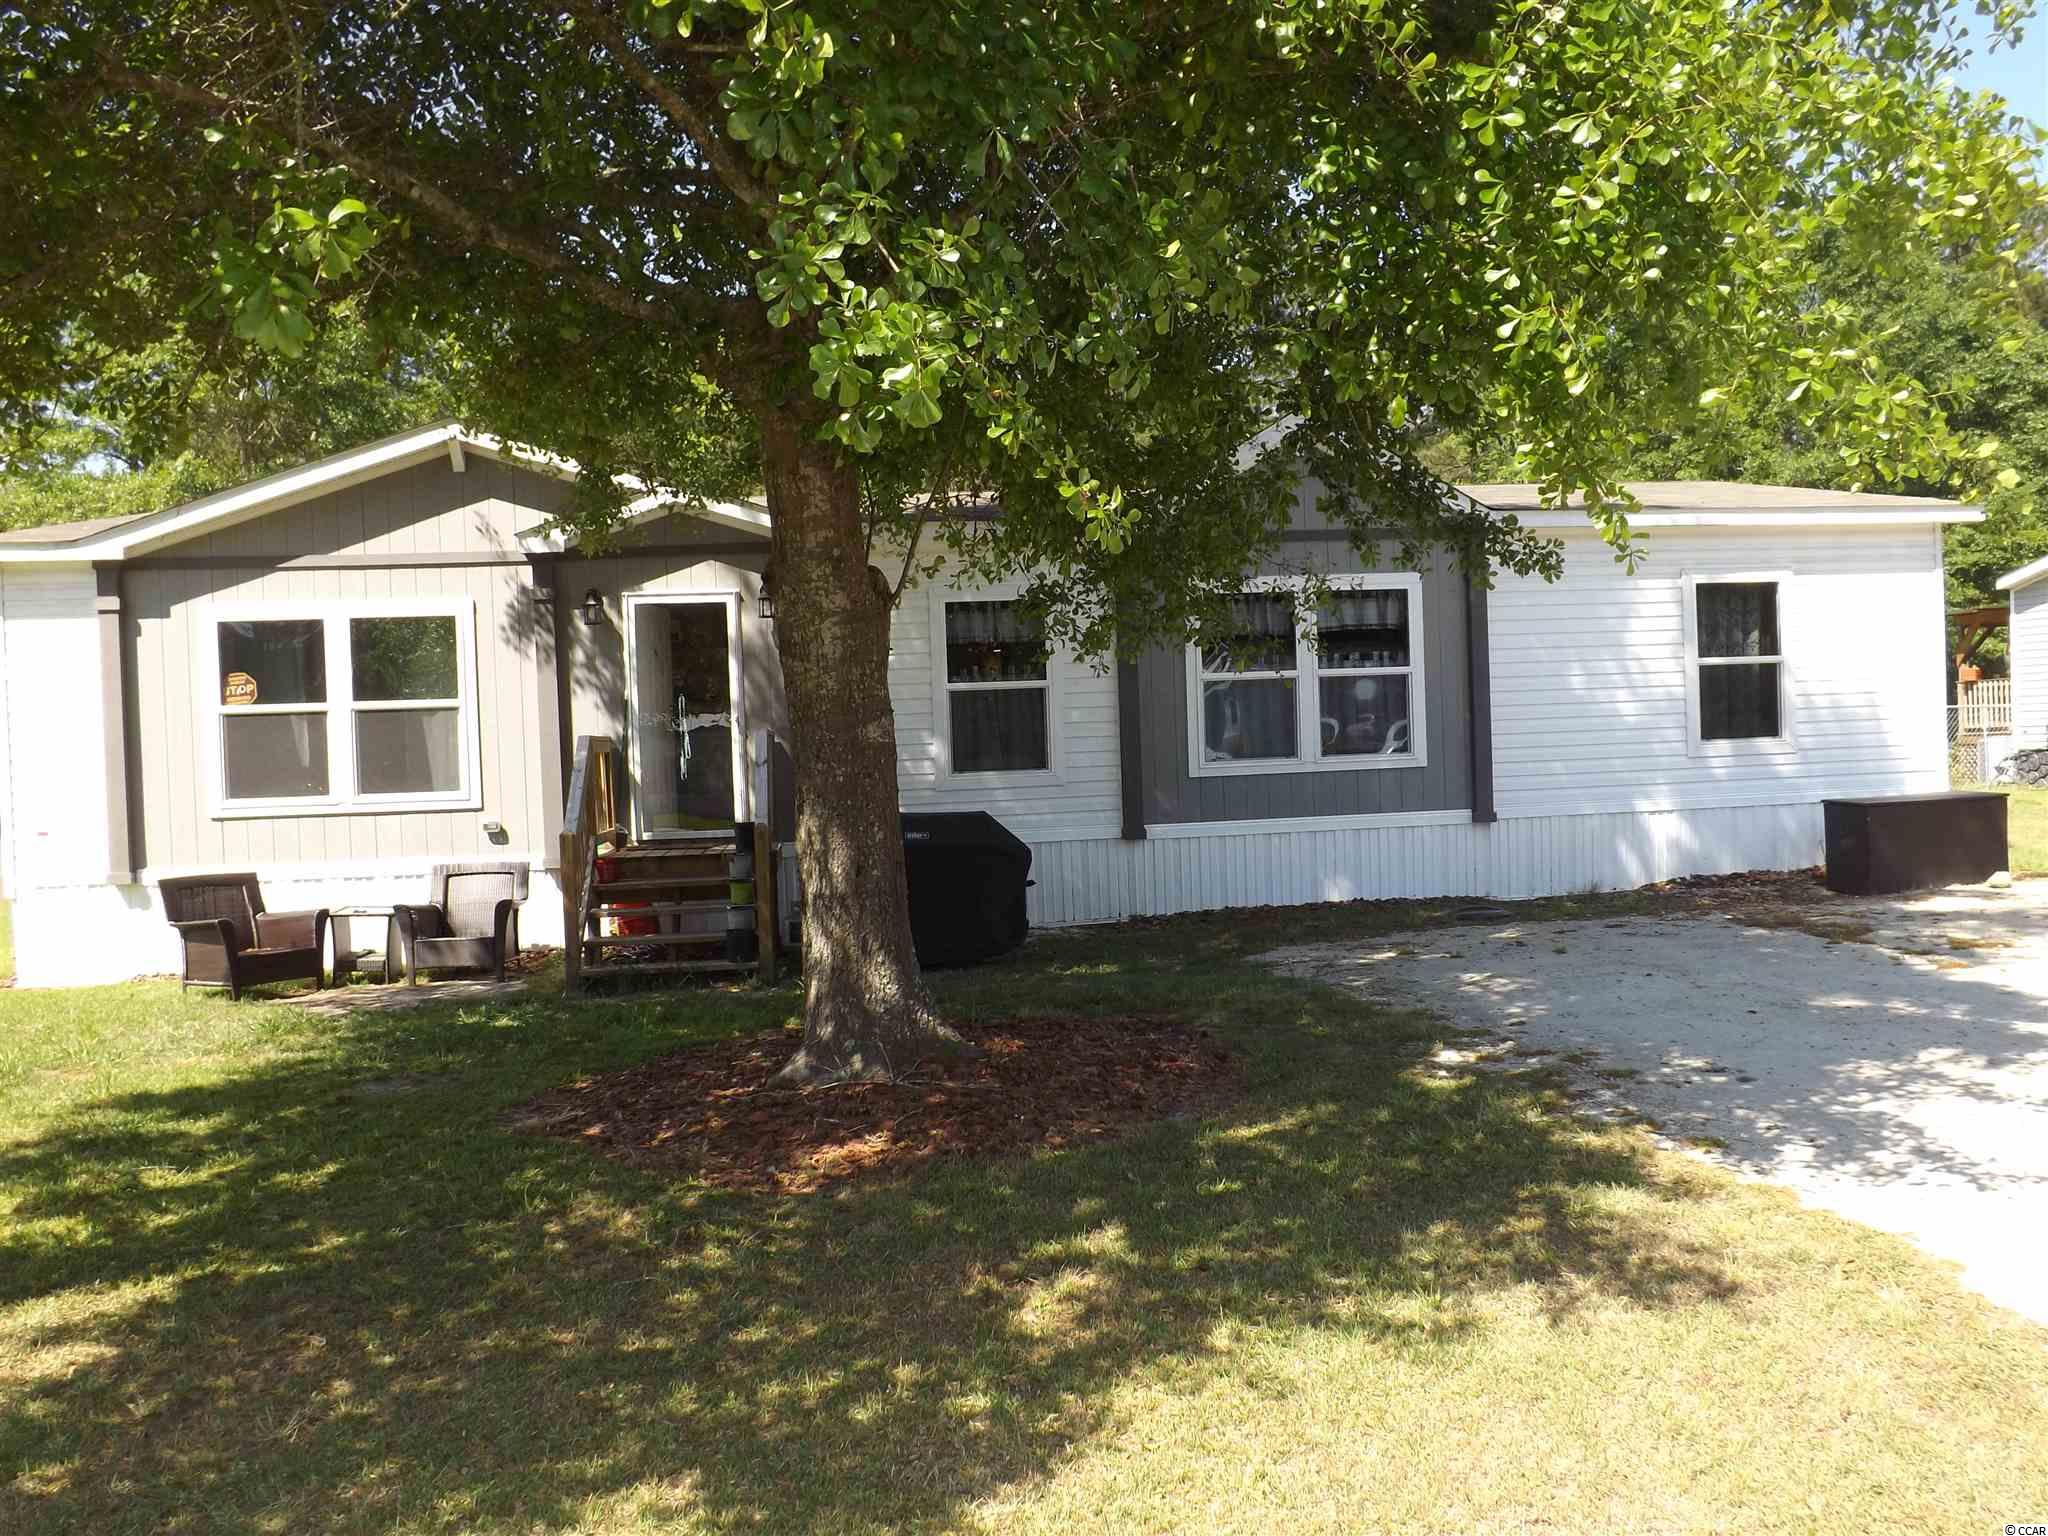 This is a 2020 Franklin model Clayton home with 3 bedrooms and 2 bathrooms. You will love the open floor plan, large master bathroom with tile shower and tub, and nice pantry. It sits on 0.25 acre, for a little room in the back to enjoy BBQs. Can be moved to a different location. See it today.